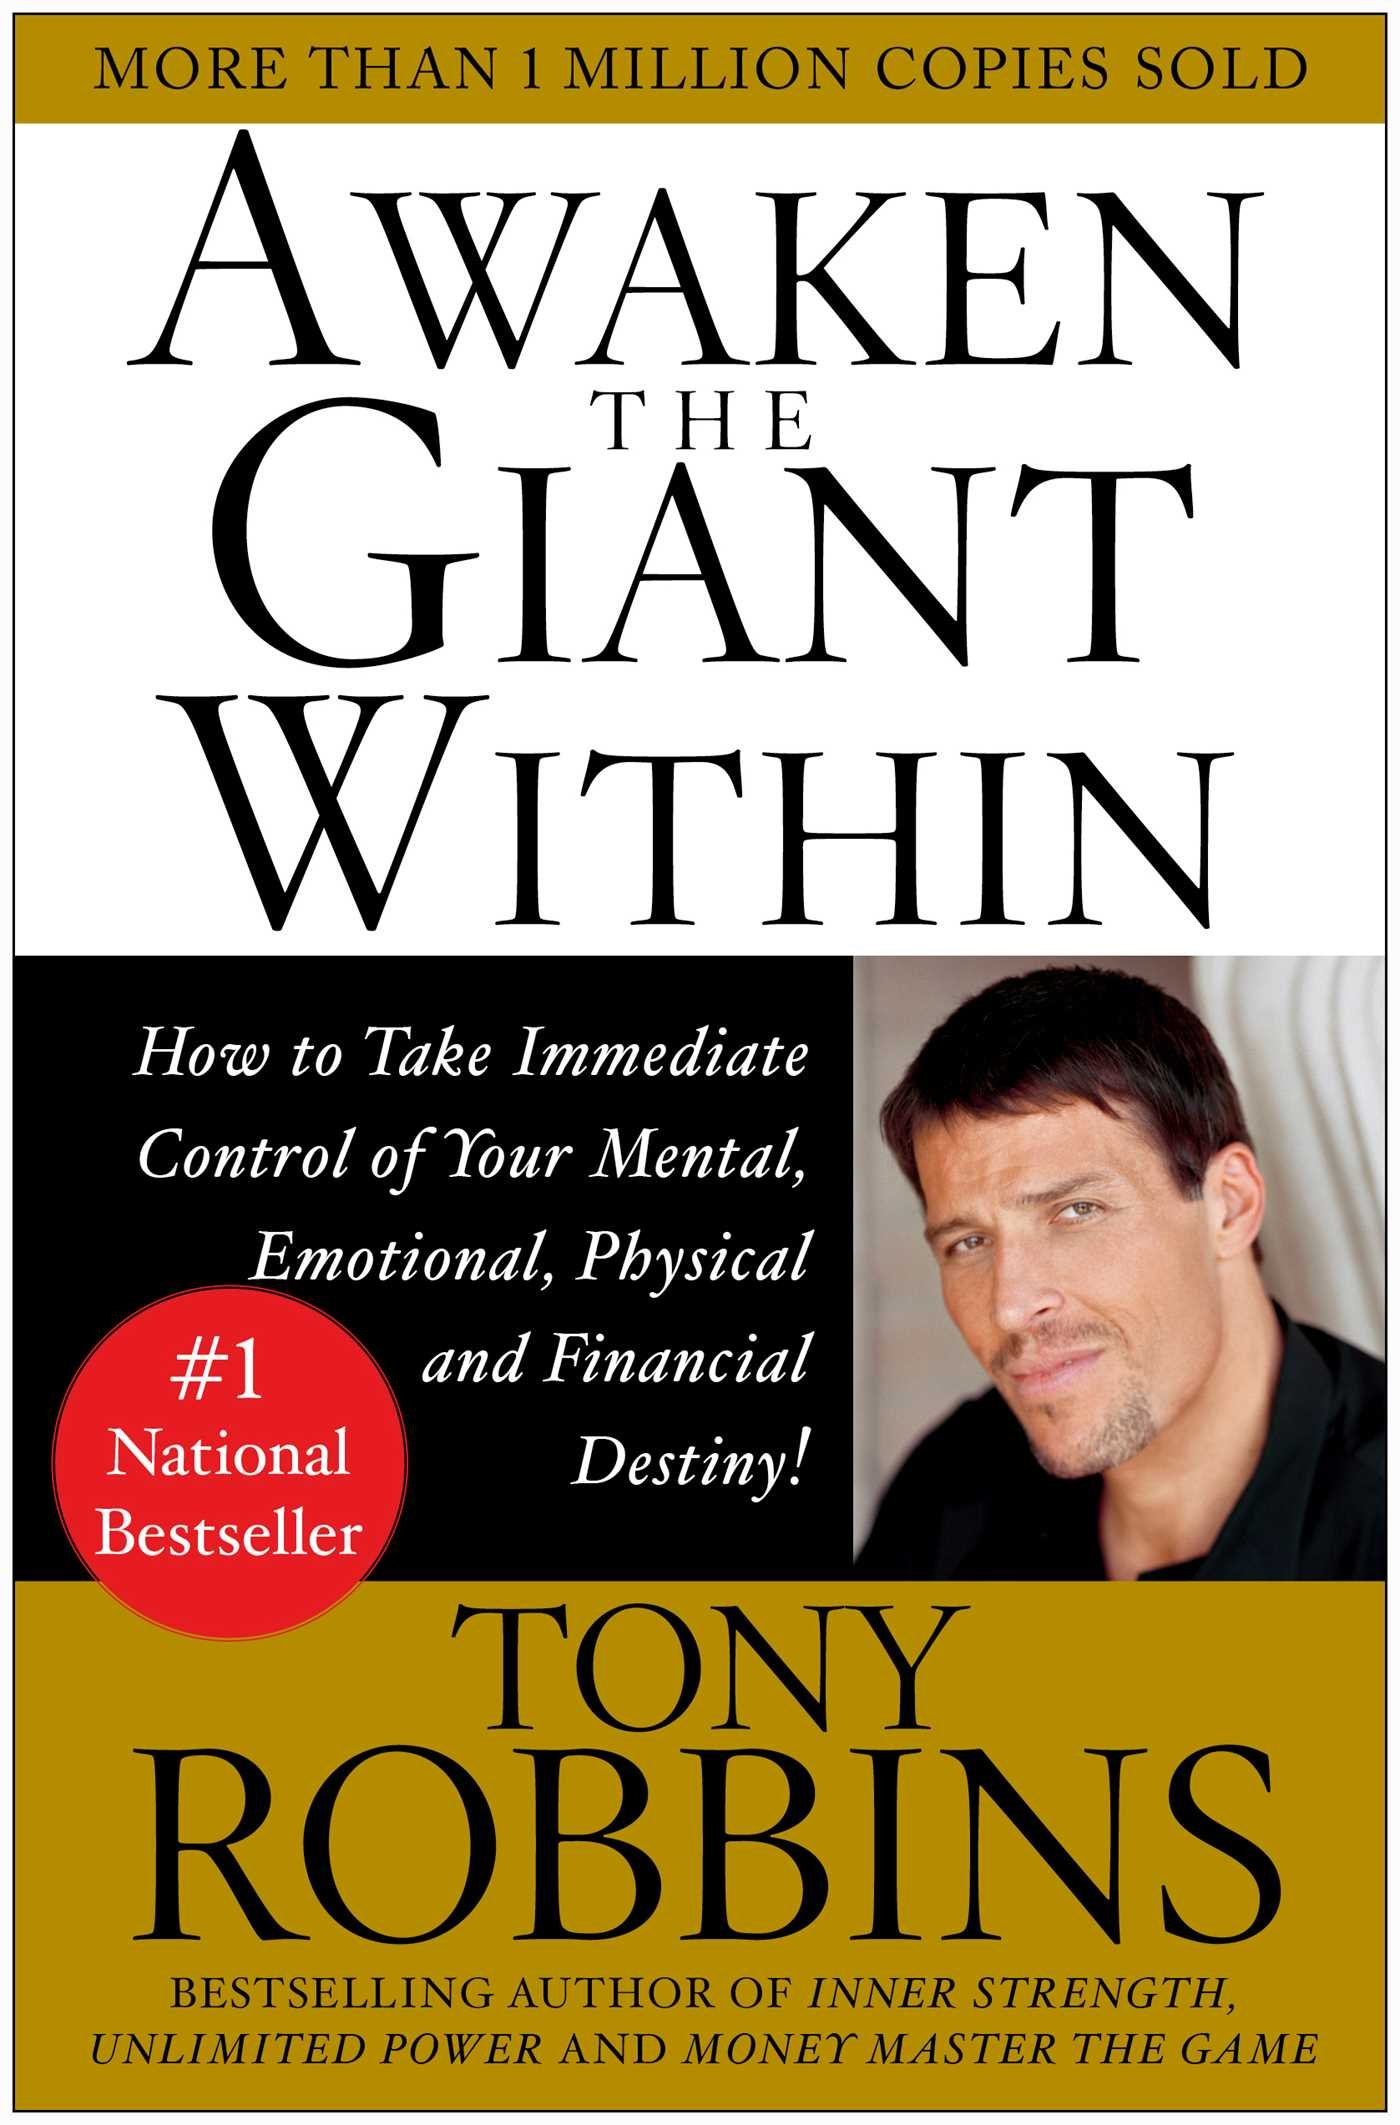 Awaken The Giant Within: Among the top Self-improvement books.